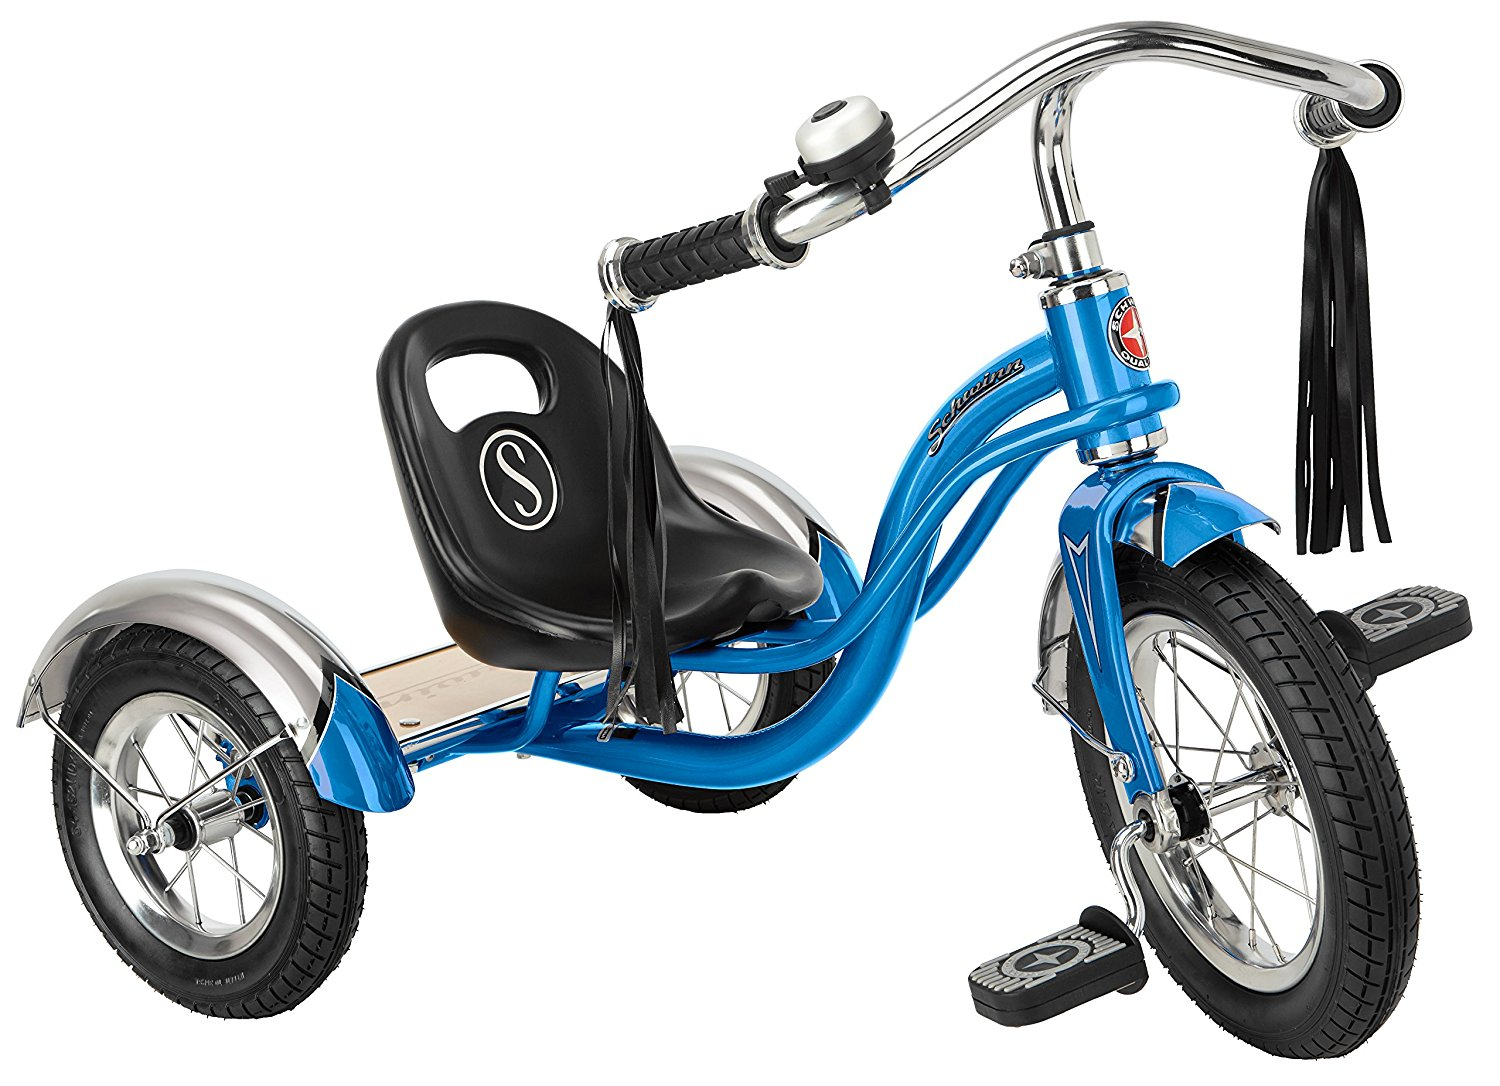 Schwinn Roadster Tricycle For Kids